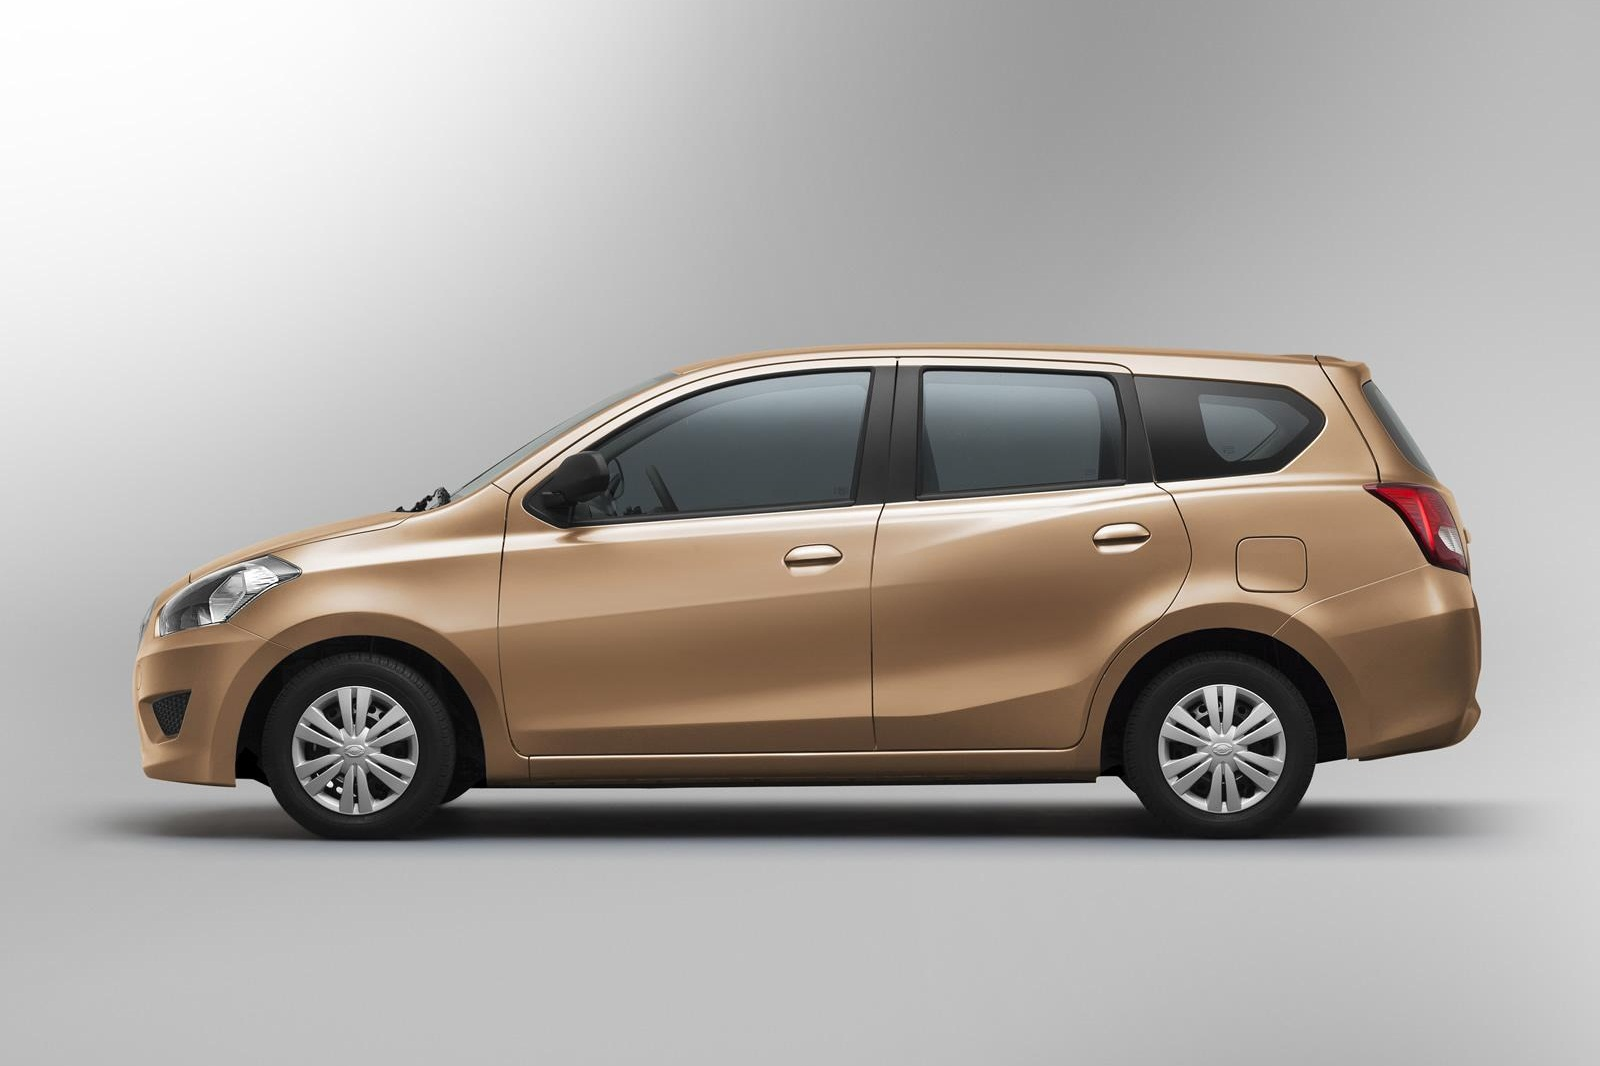 7 Seater Cars India >> Datsun GO+ 7-seater MPV to launch on January 15, 2015